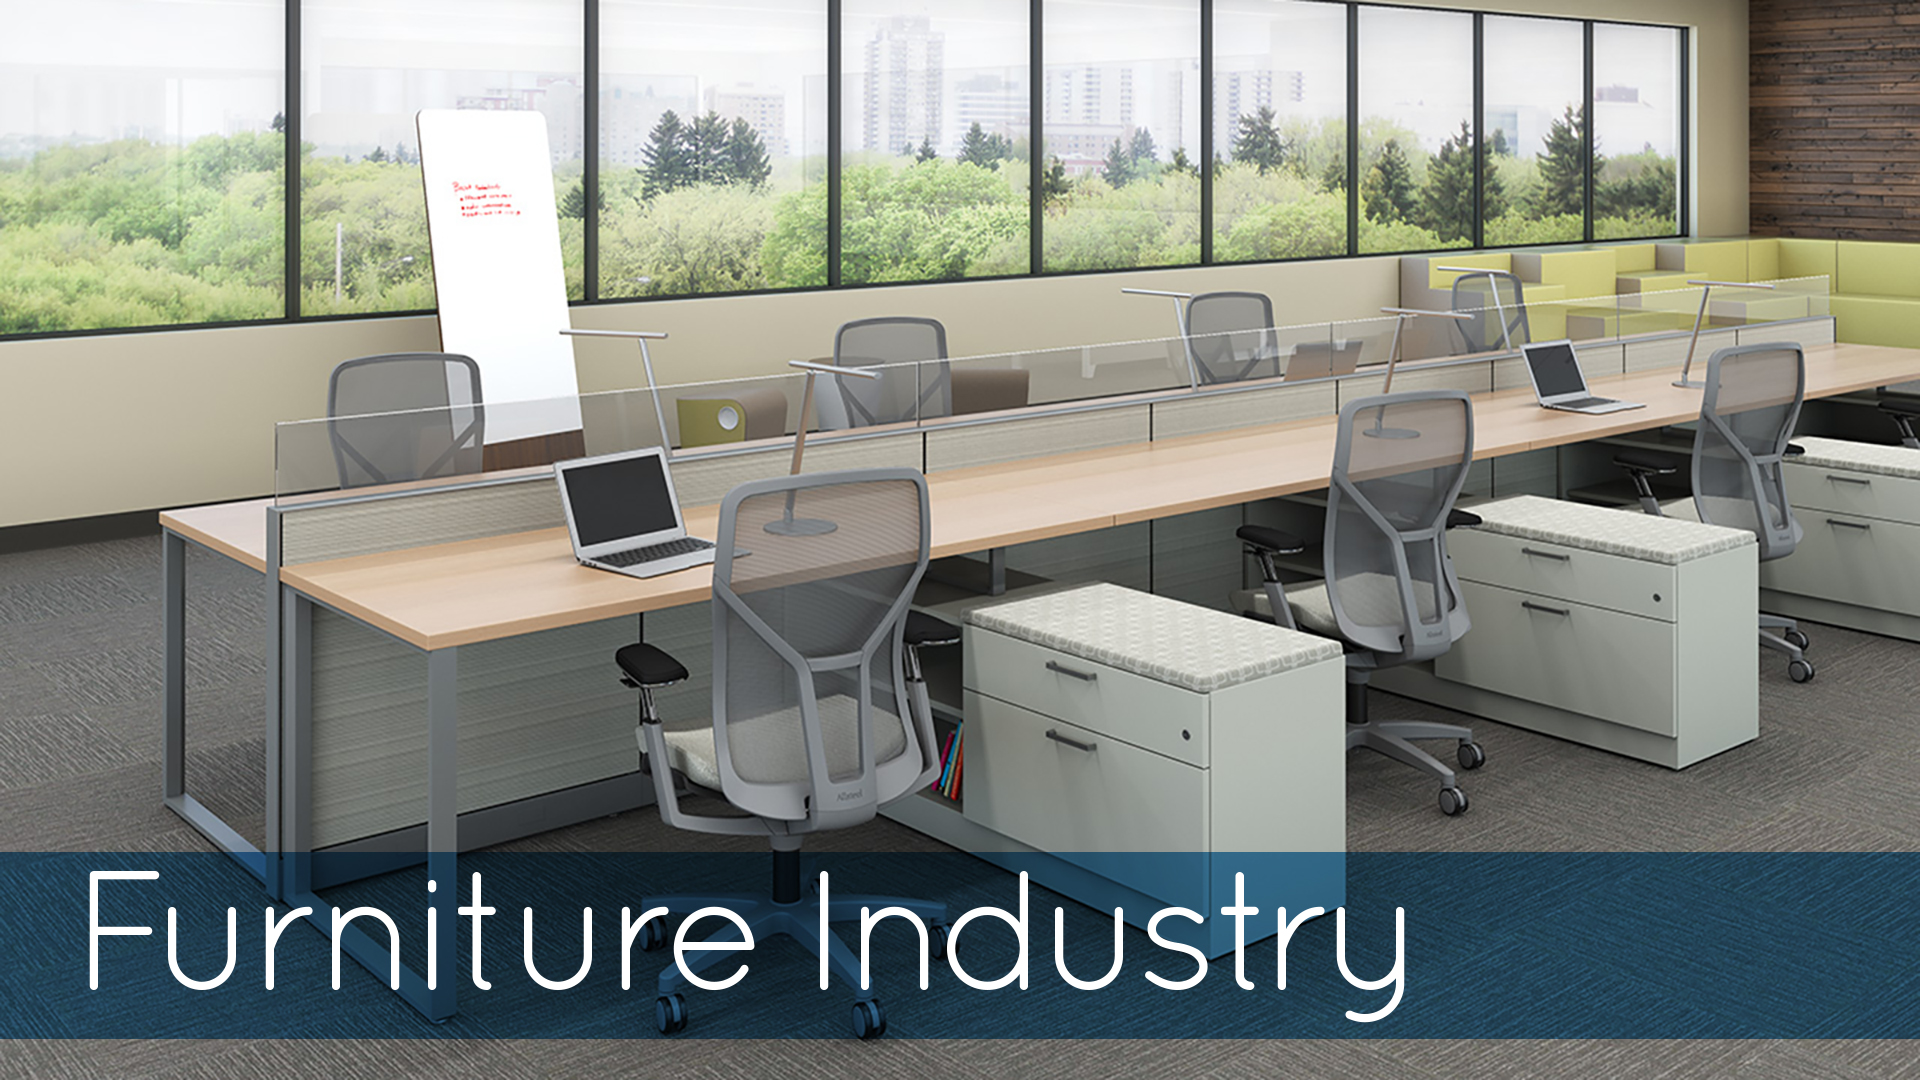 Furniture Industry Image with Chairs at Desk